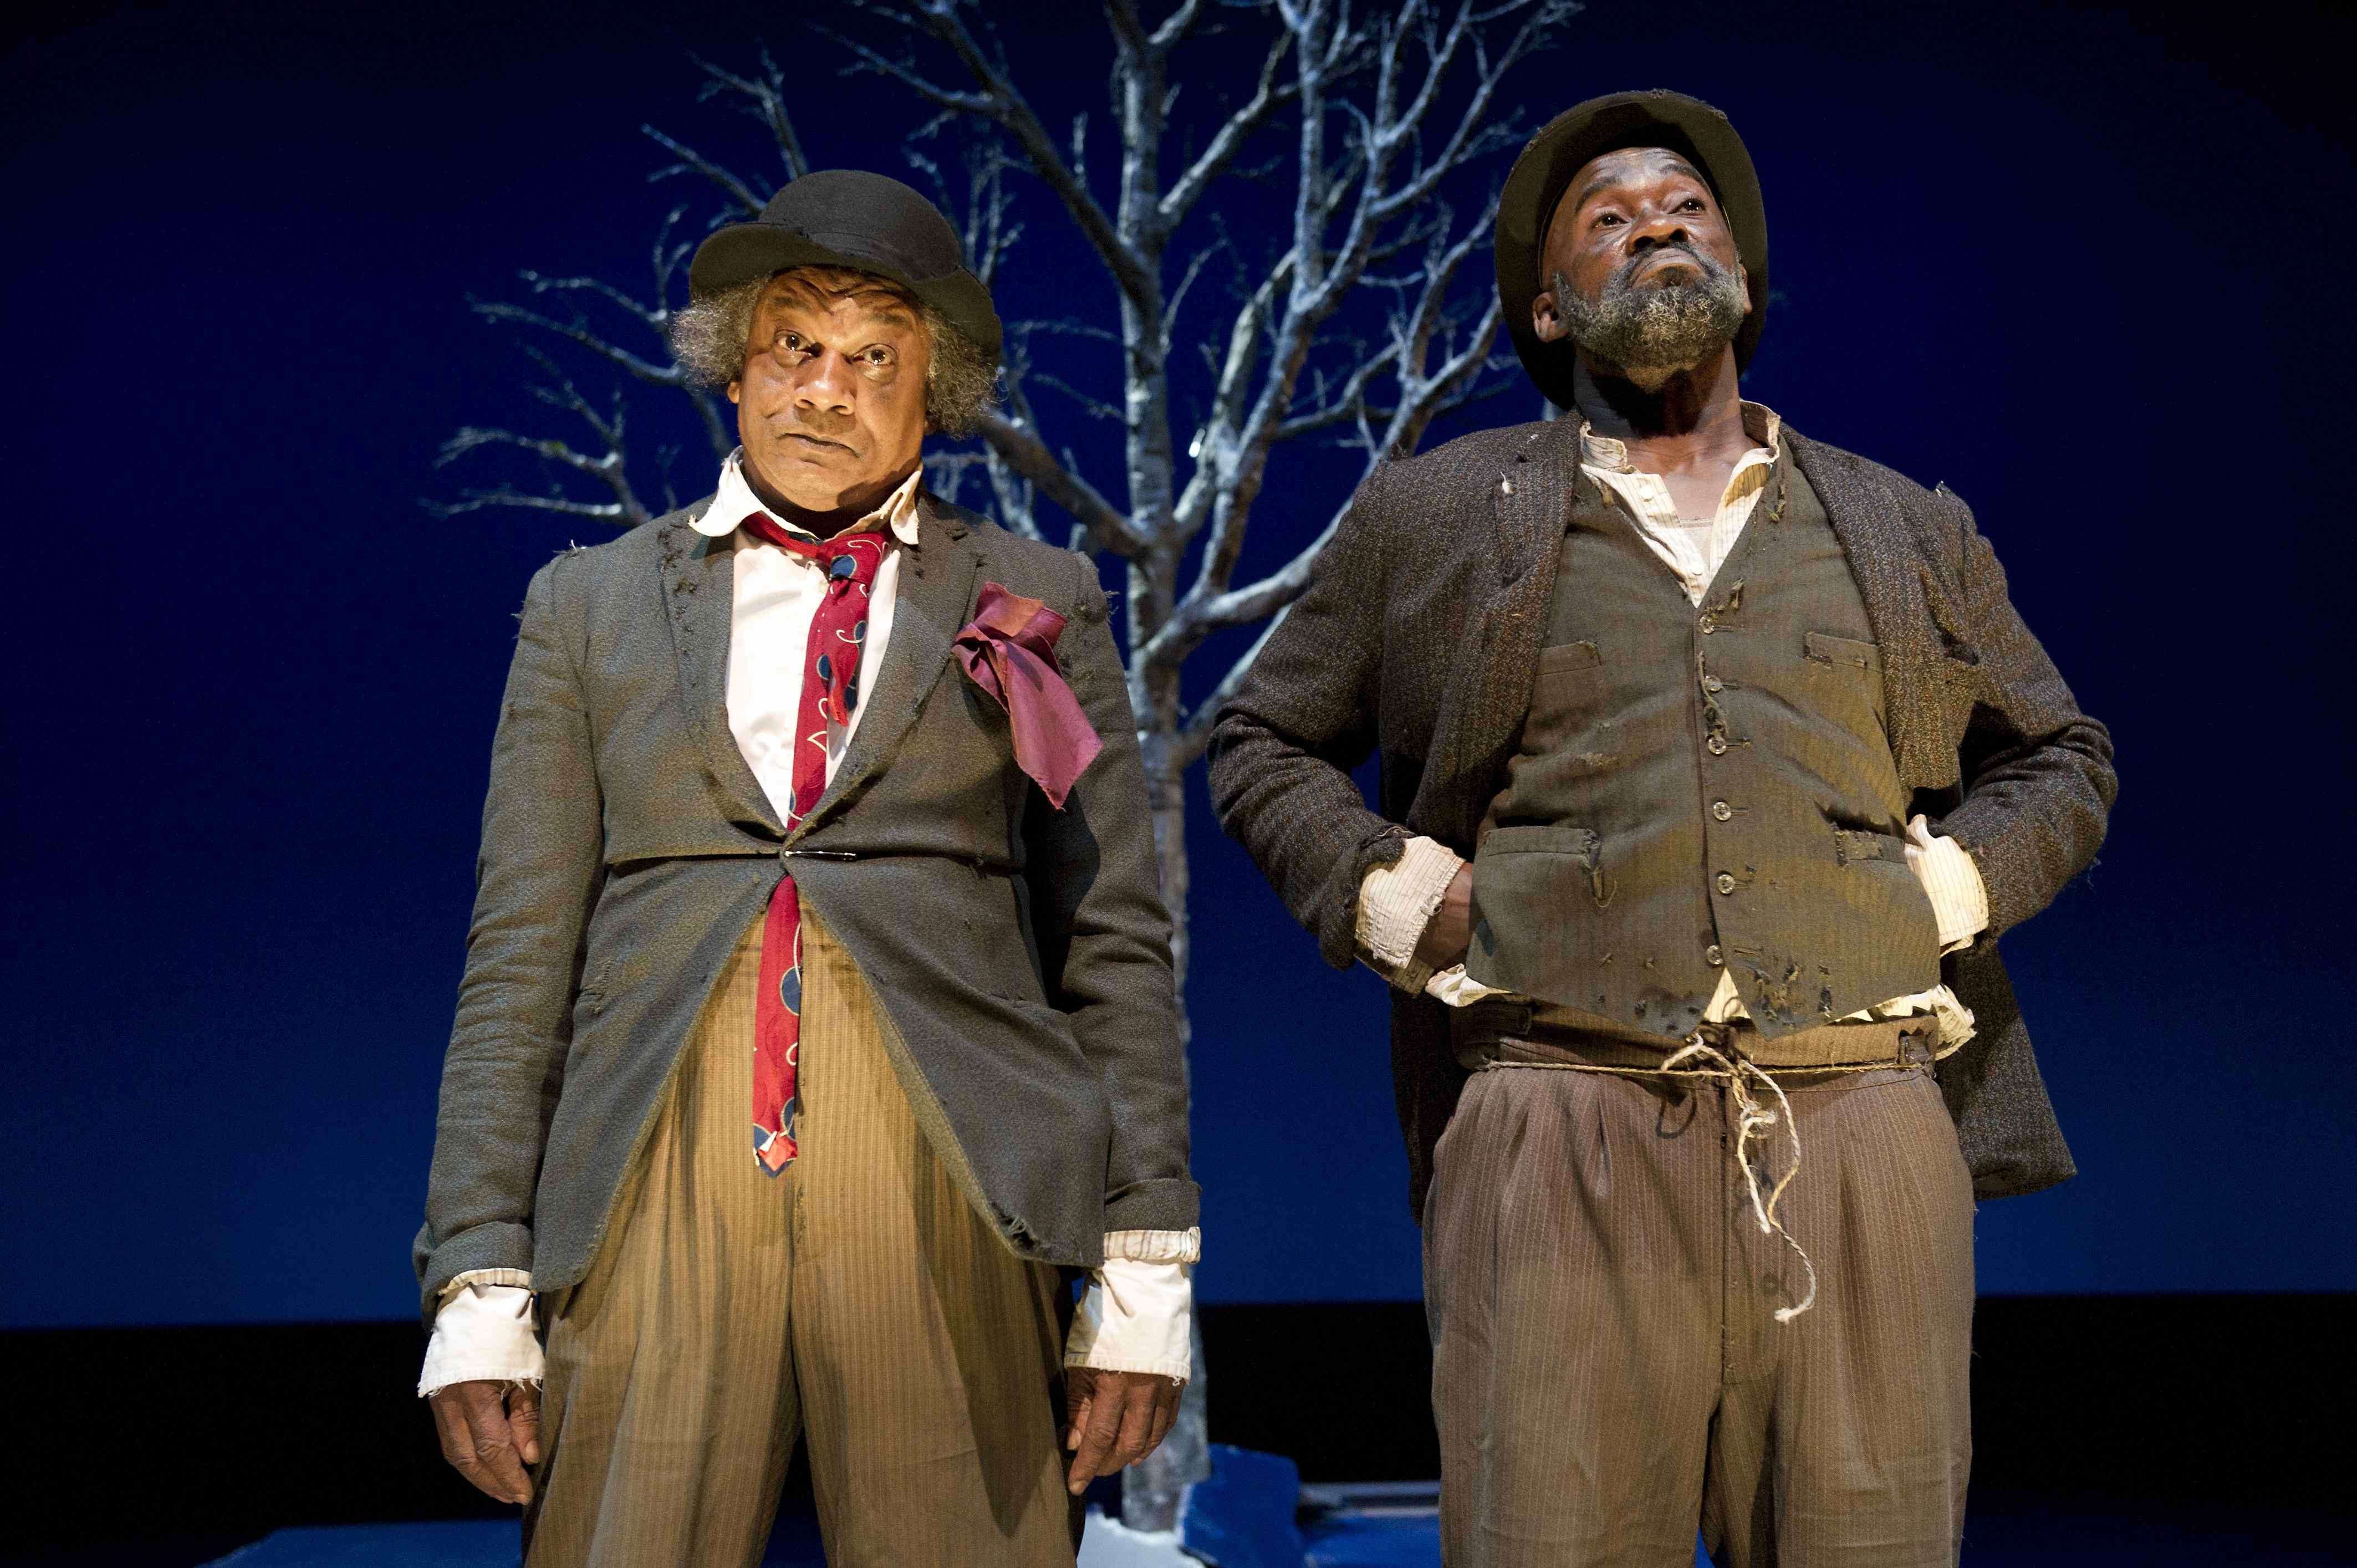 Who is Godot in the play Waiting for Godot?